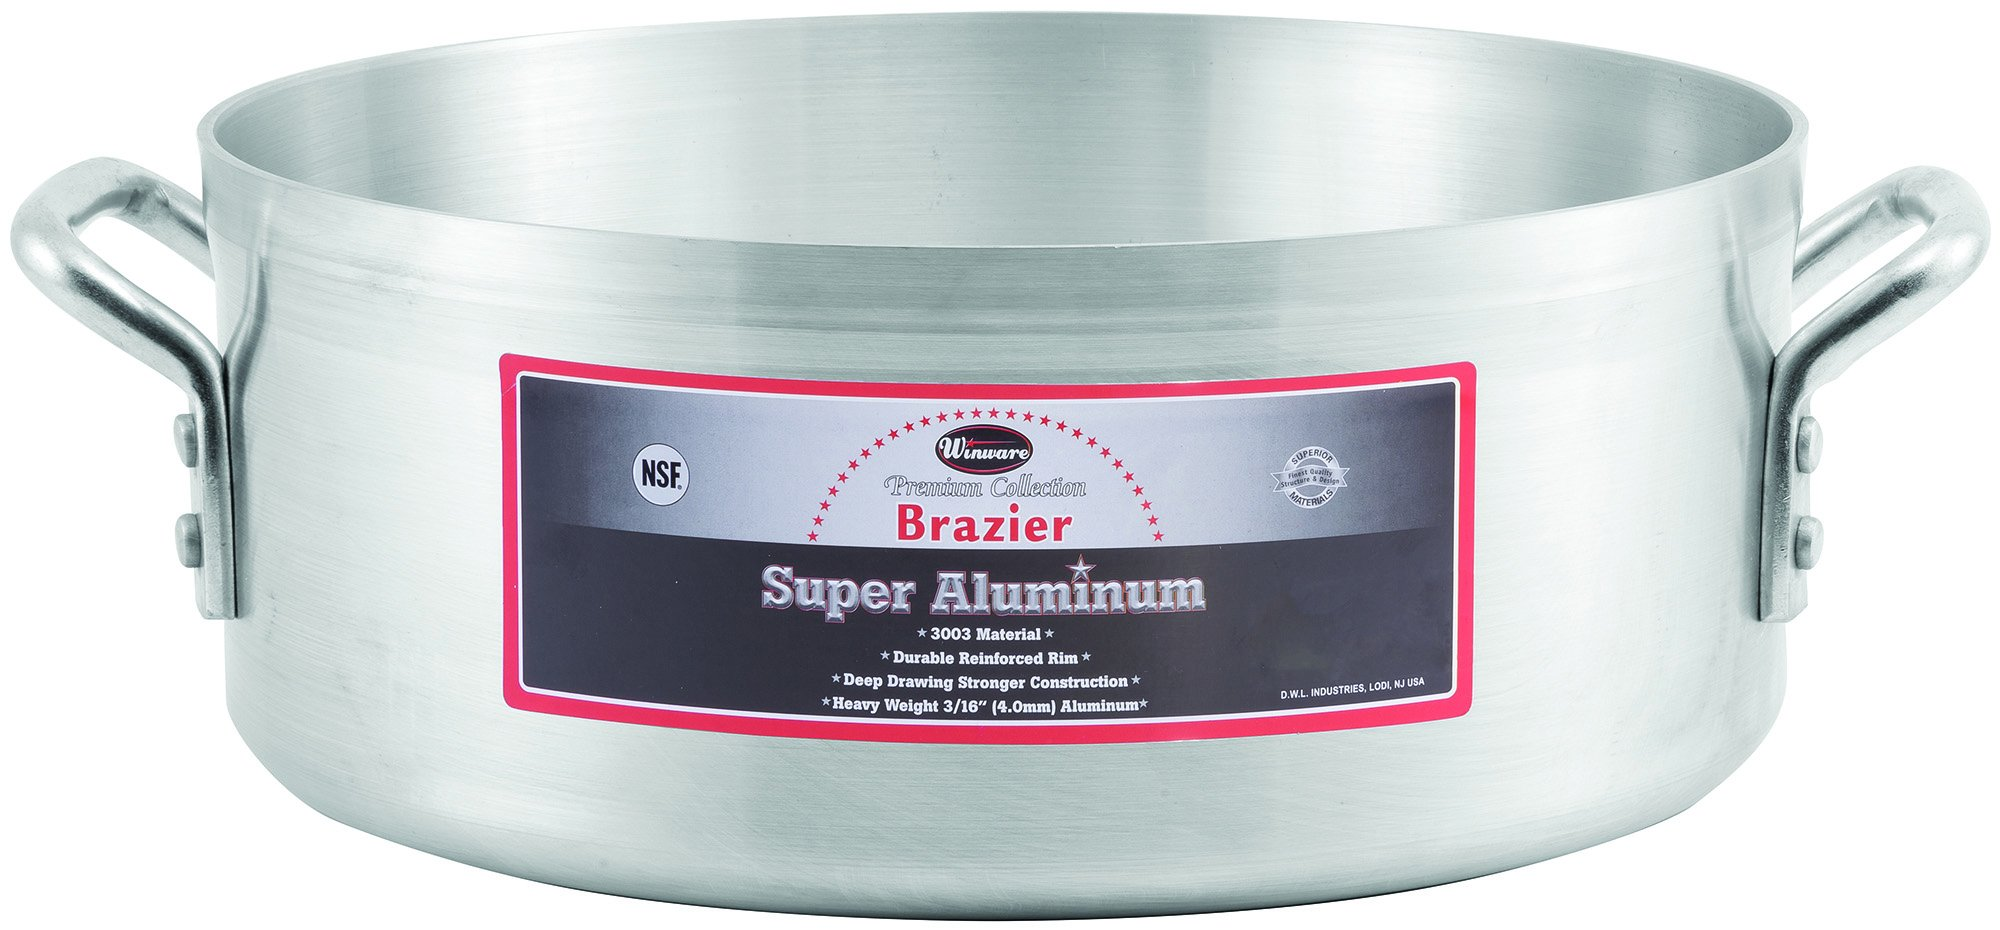 Winco USA AXBZ-15 Super Aluminum Braizer, Heavy Weight, 15 Quart, Aluminum by Winco USA